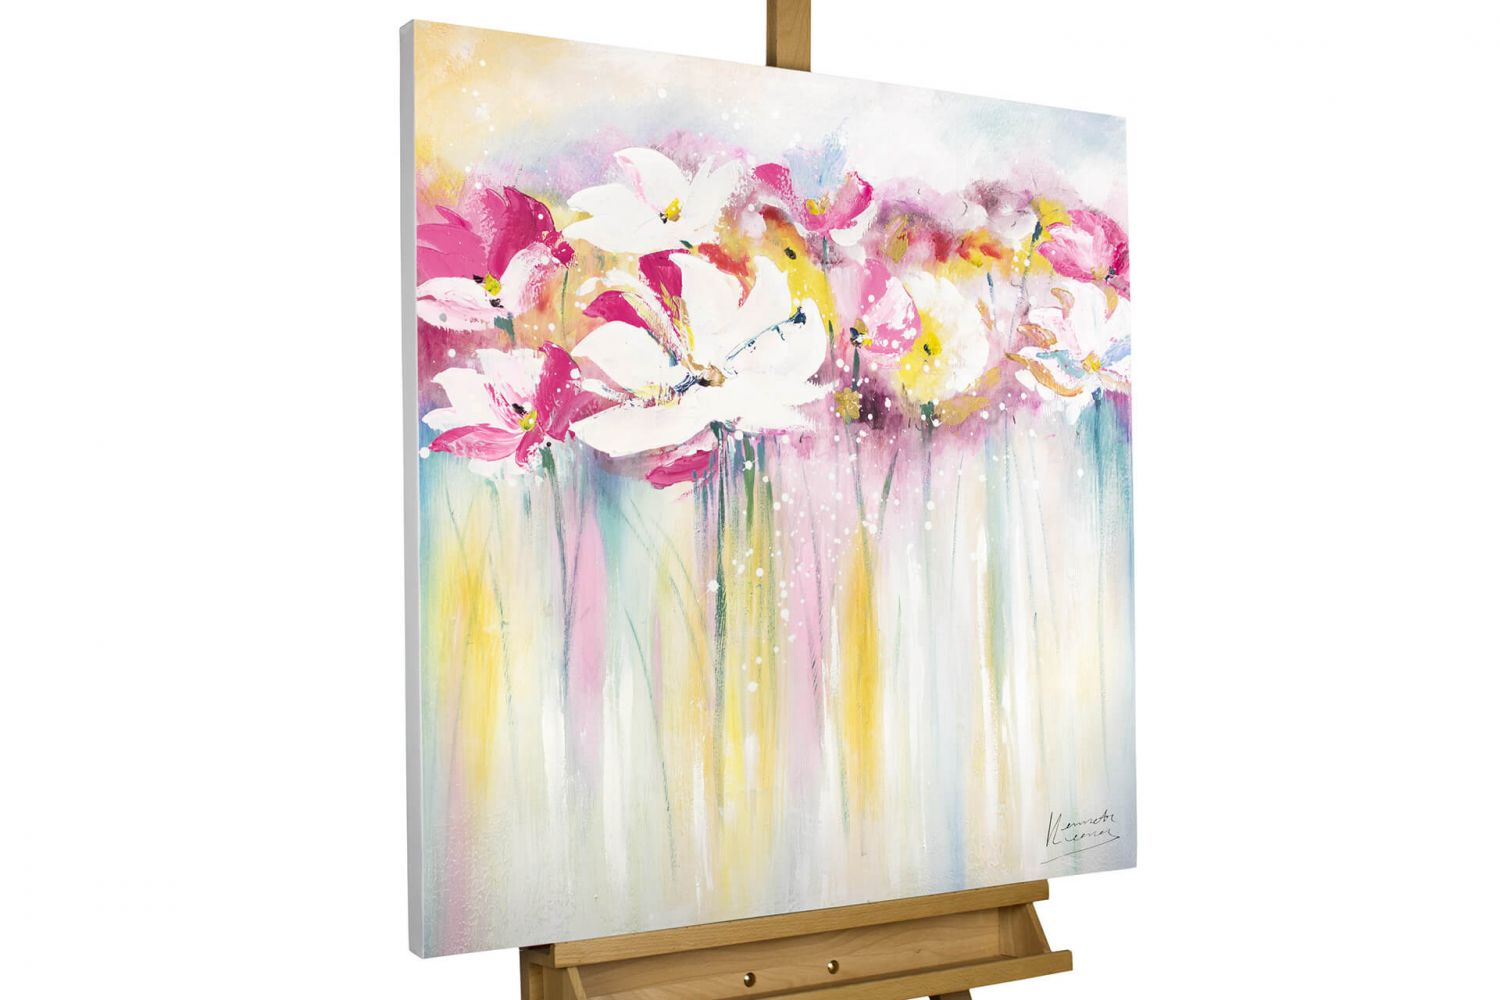 acryl gem lde 39 blumen bl ten pink weiss 39 handgemalt leinwand bilder 80x80cm ebay. Black Bedroom Furniture Sets. Home Design Ideas